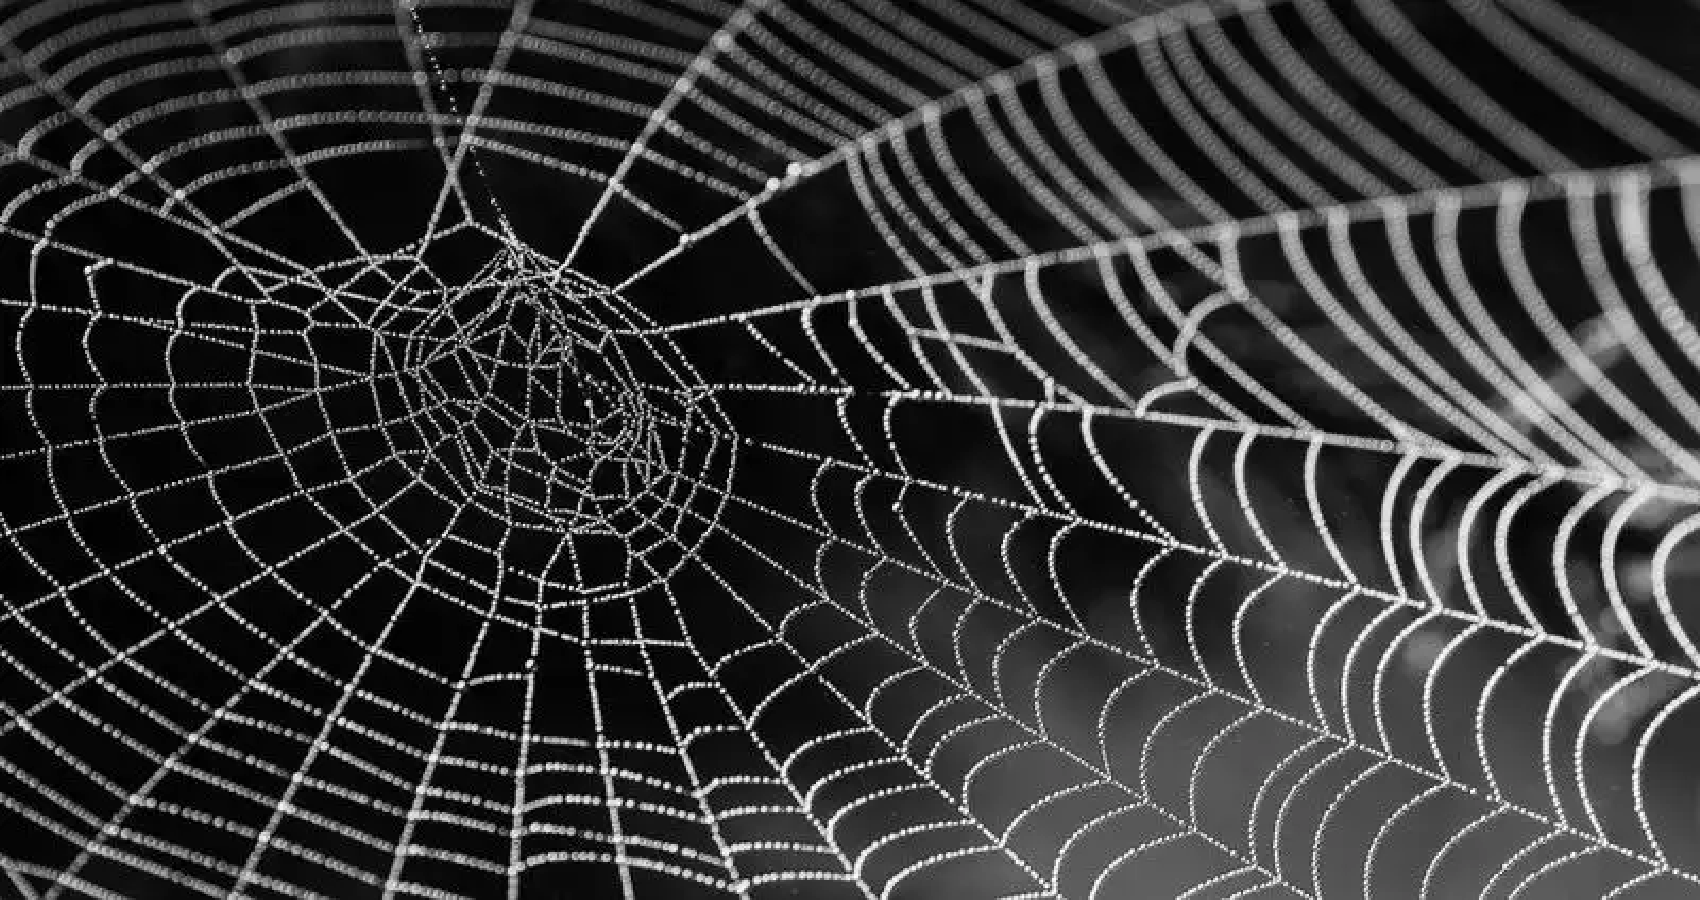 MIT Scientists Study Spider Web Structure By Translating It Into Music